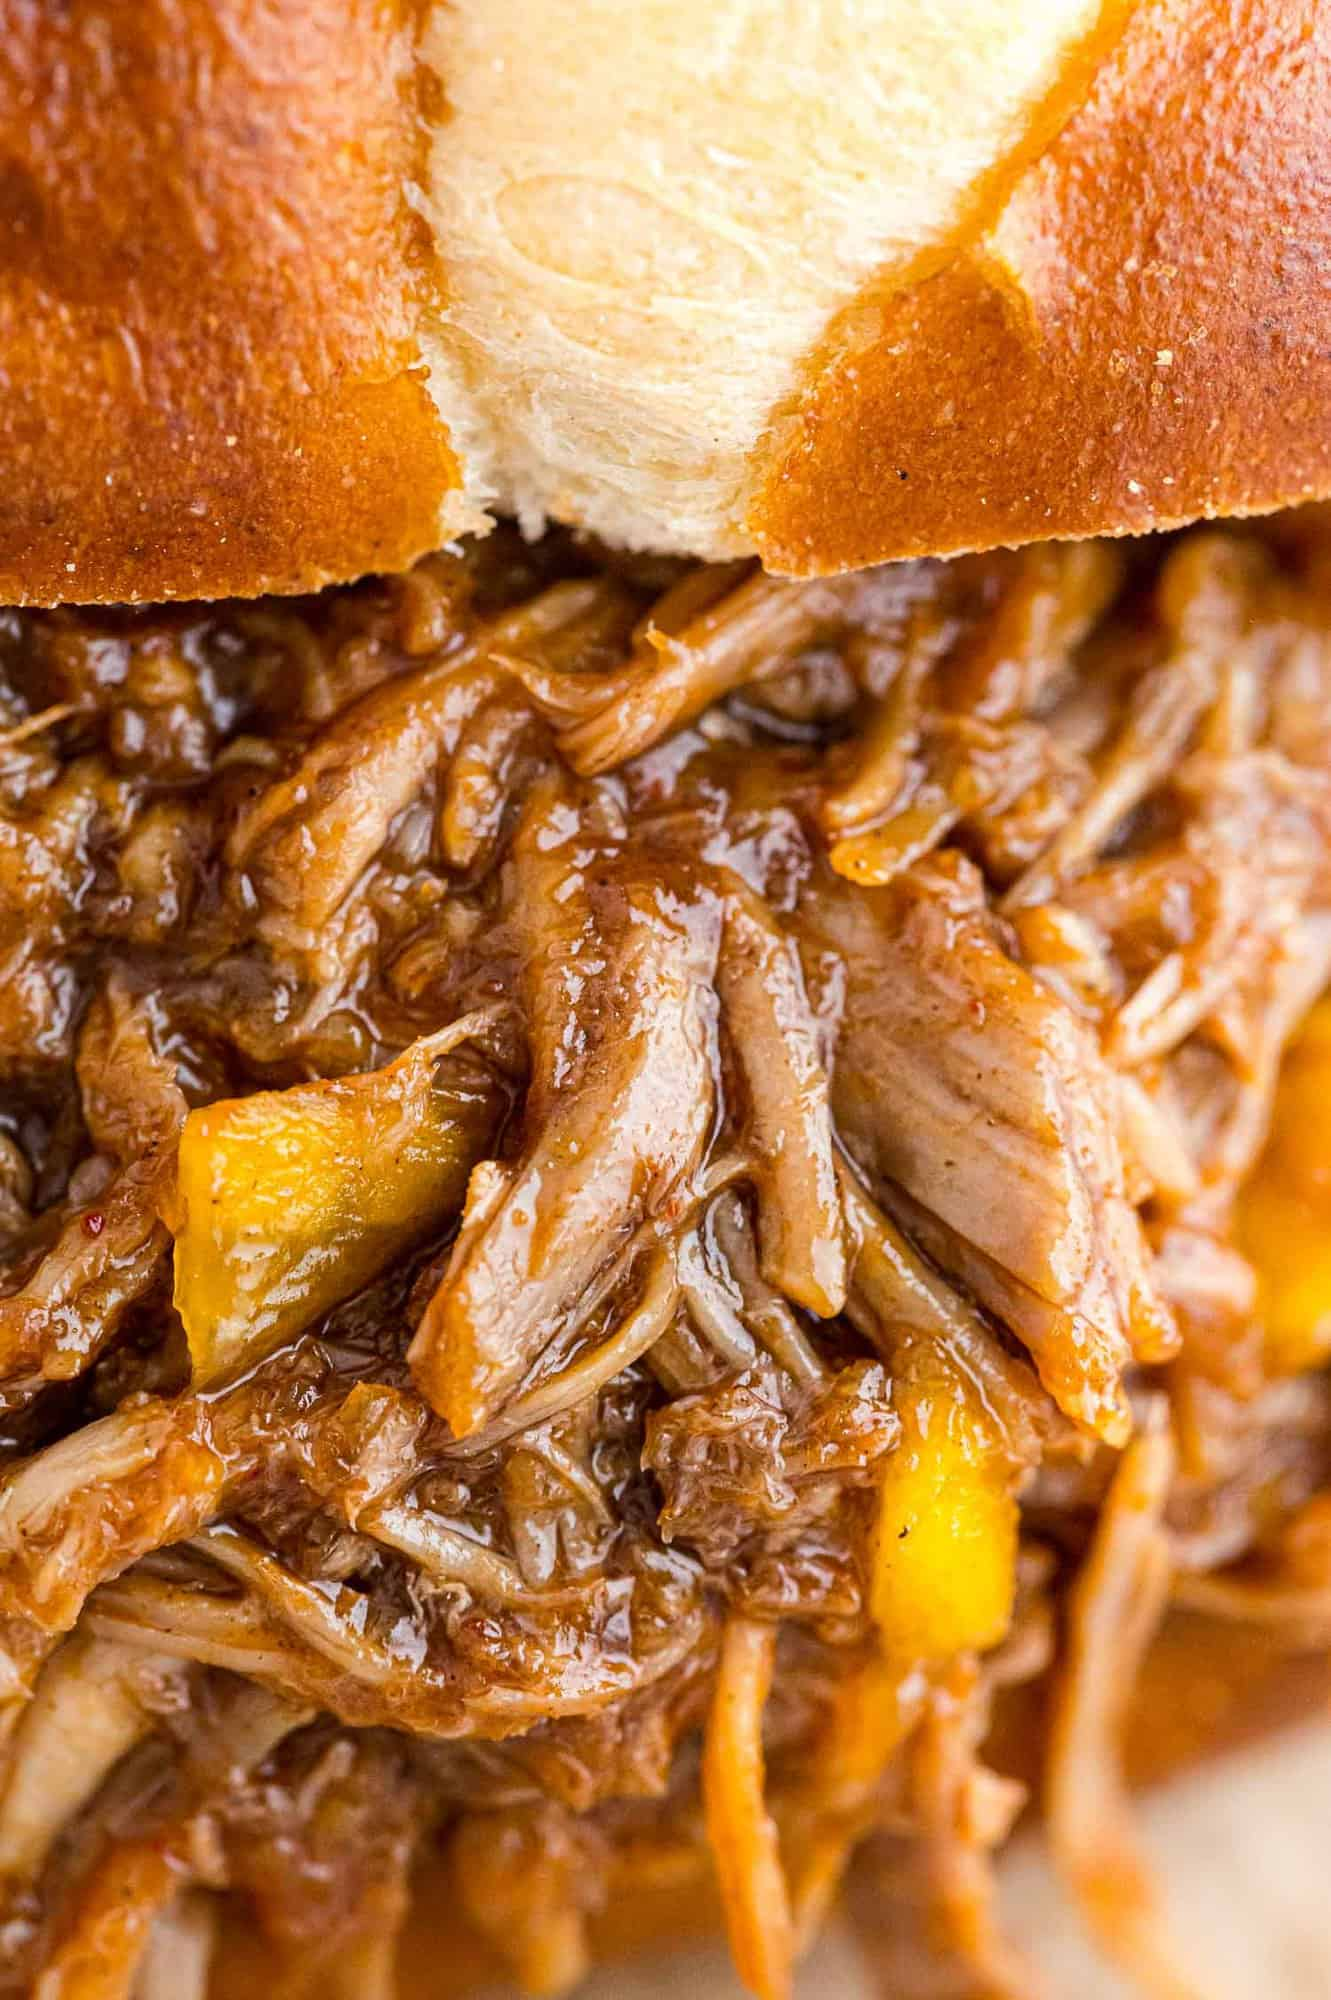 Very close up view of pulled pork with mango, on a bun.